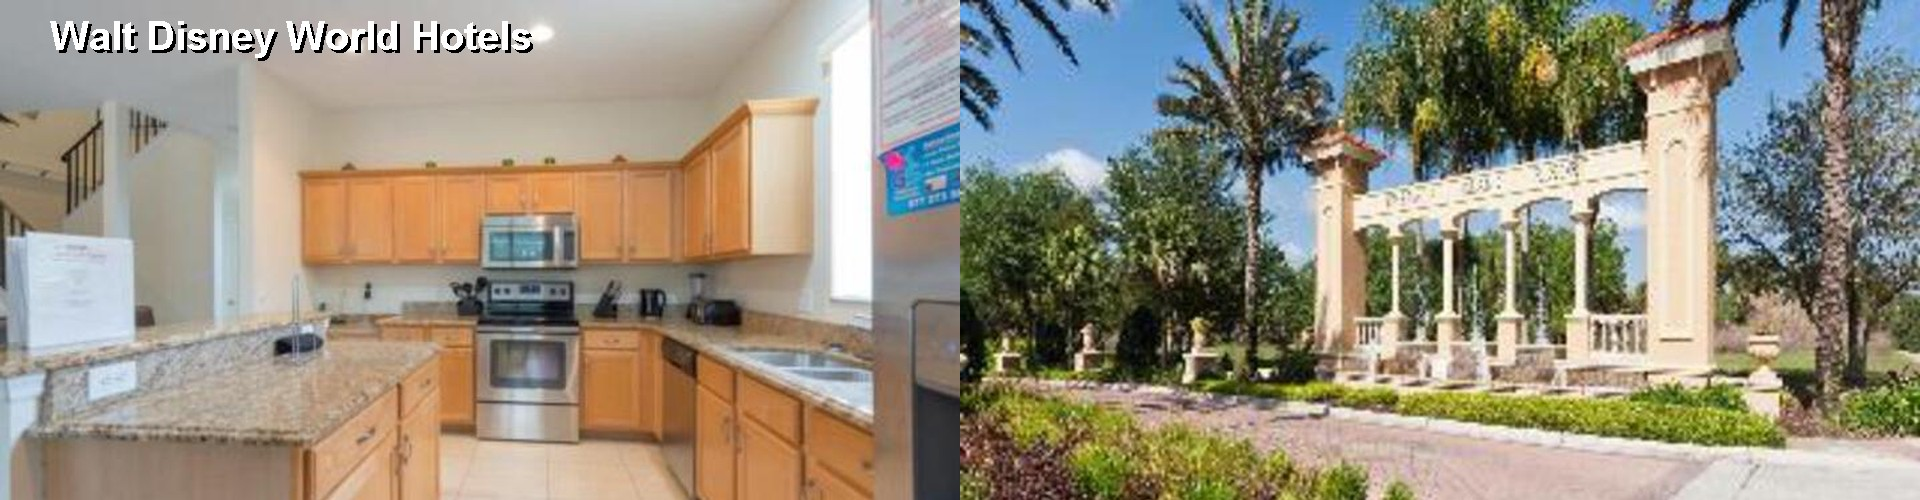 5 Best Hotels near Walt Disney World